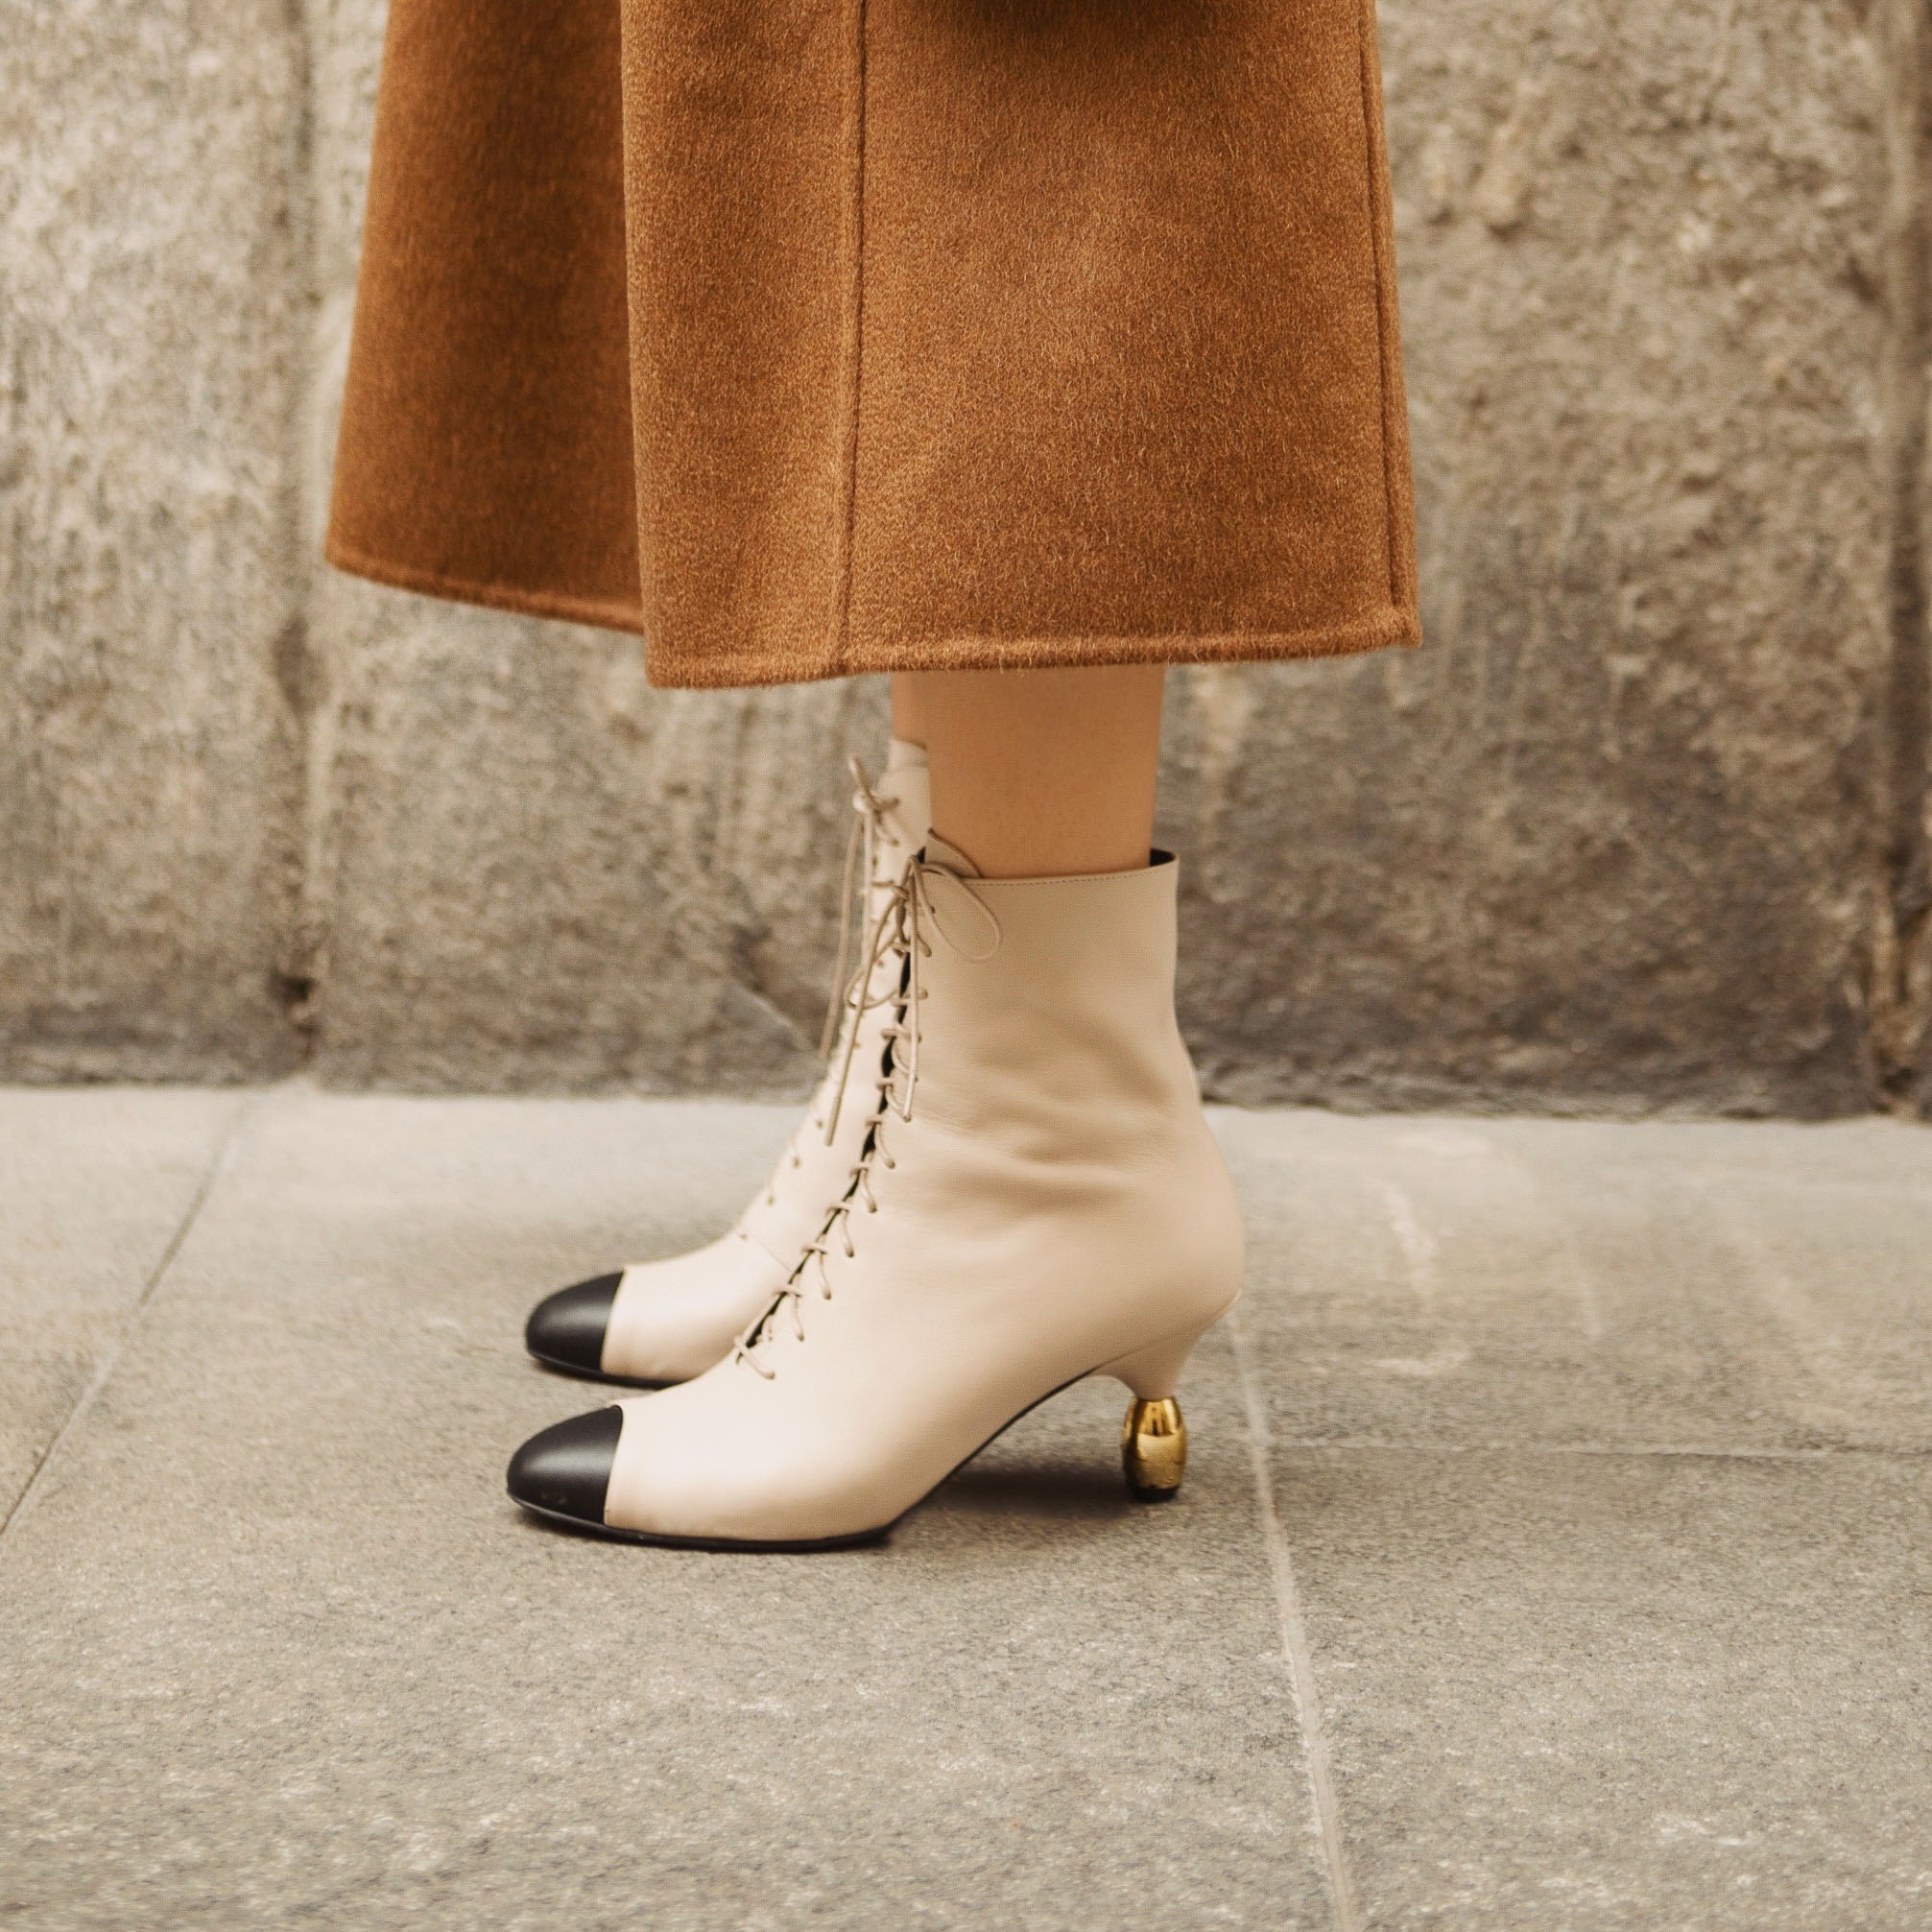 Best Fall Winter 2020 shoes and boots trends: white boots, cowbow heel boots, combat boots, snake print shoes, croc print boots. Yuul Yie Boots